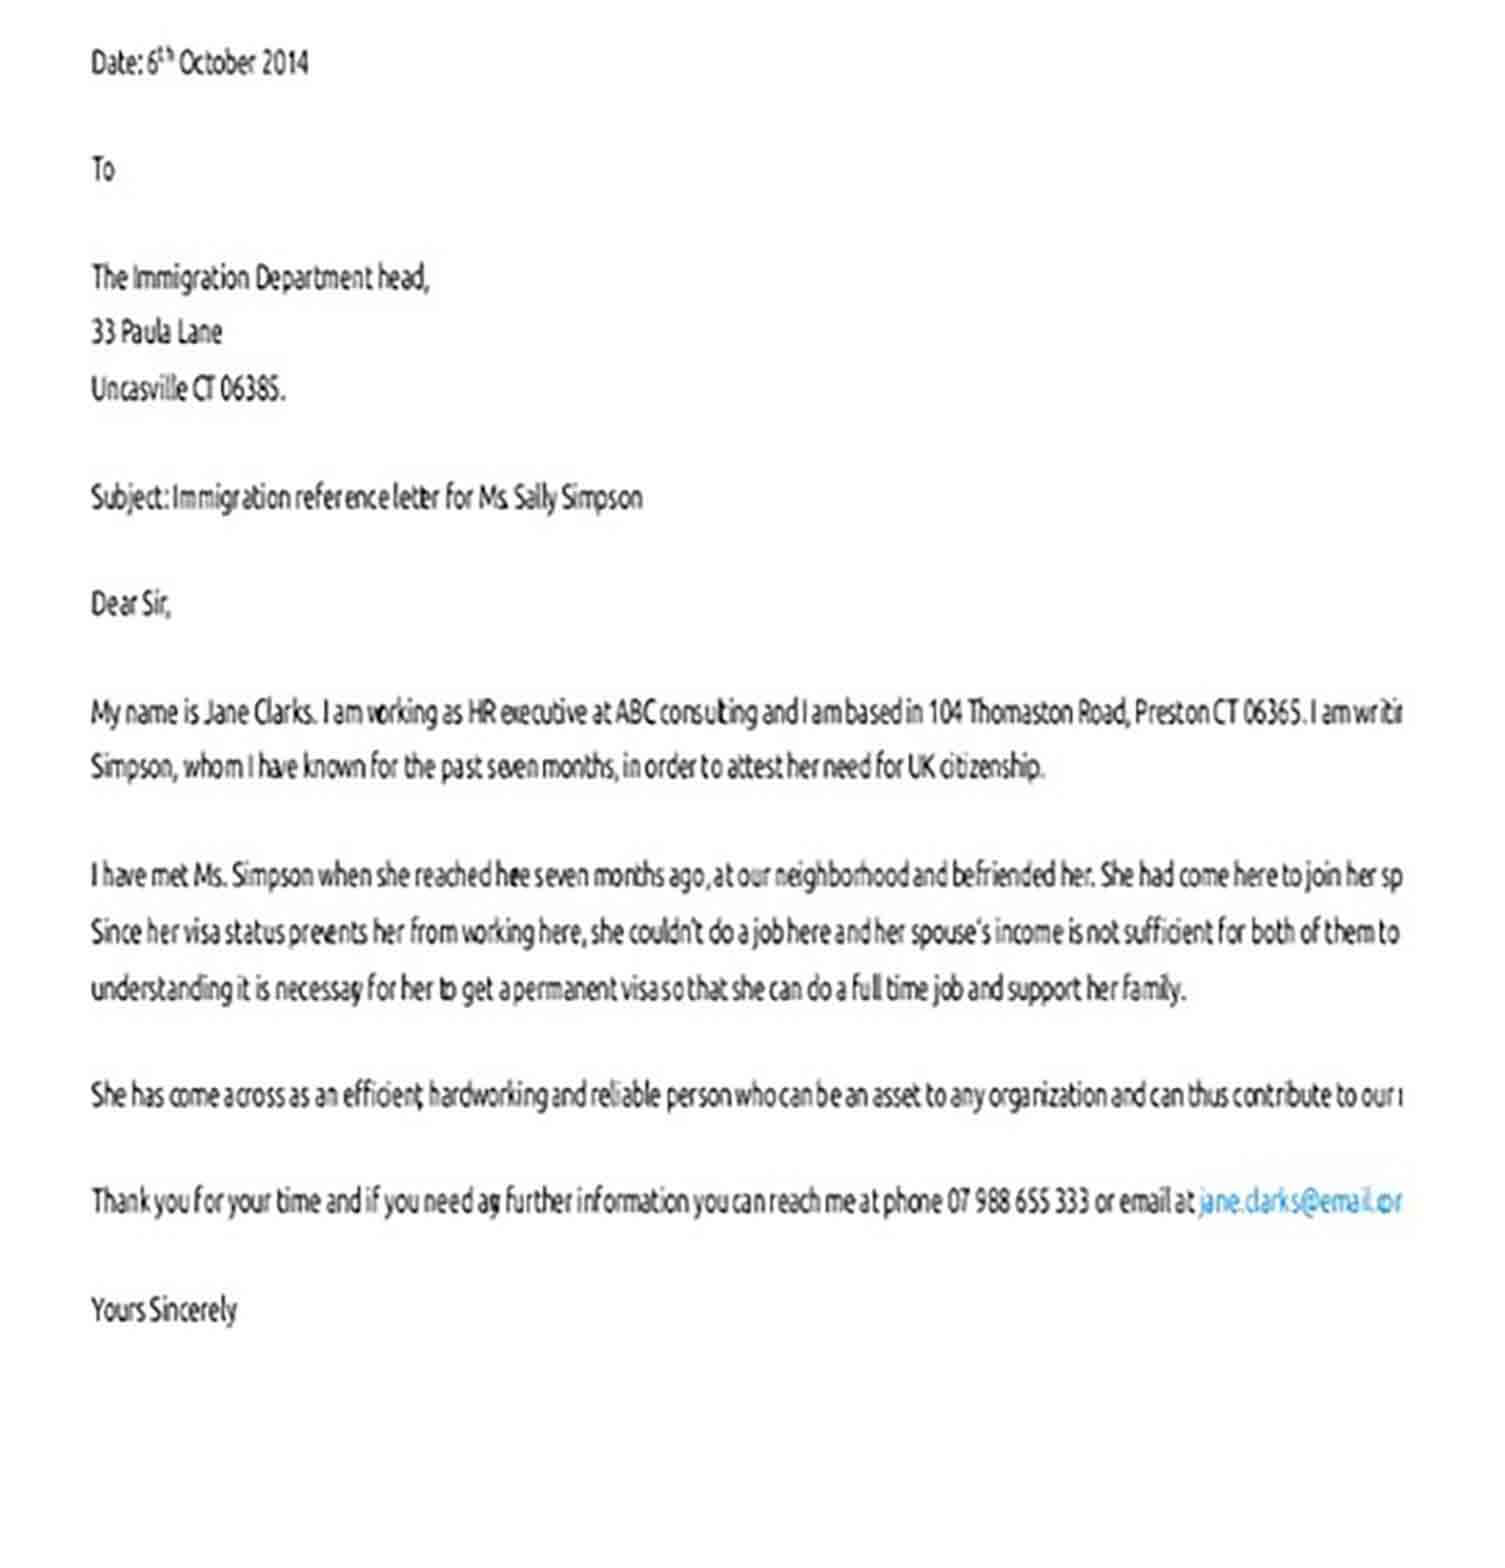 Sample Character Reference Letter for Immigration